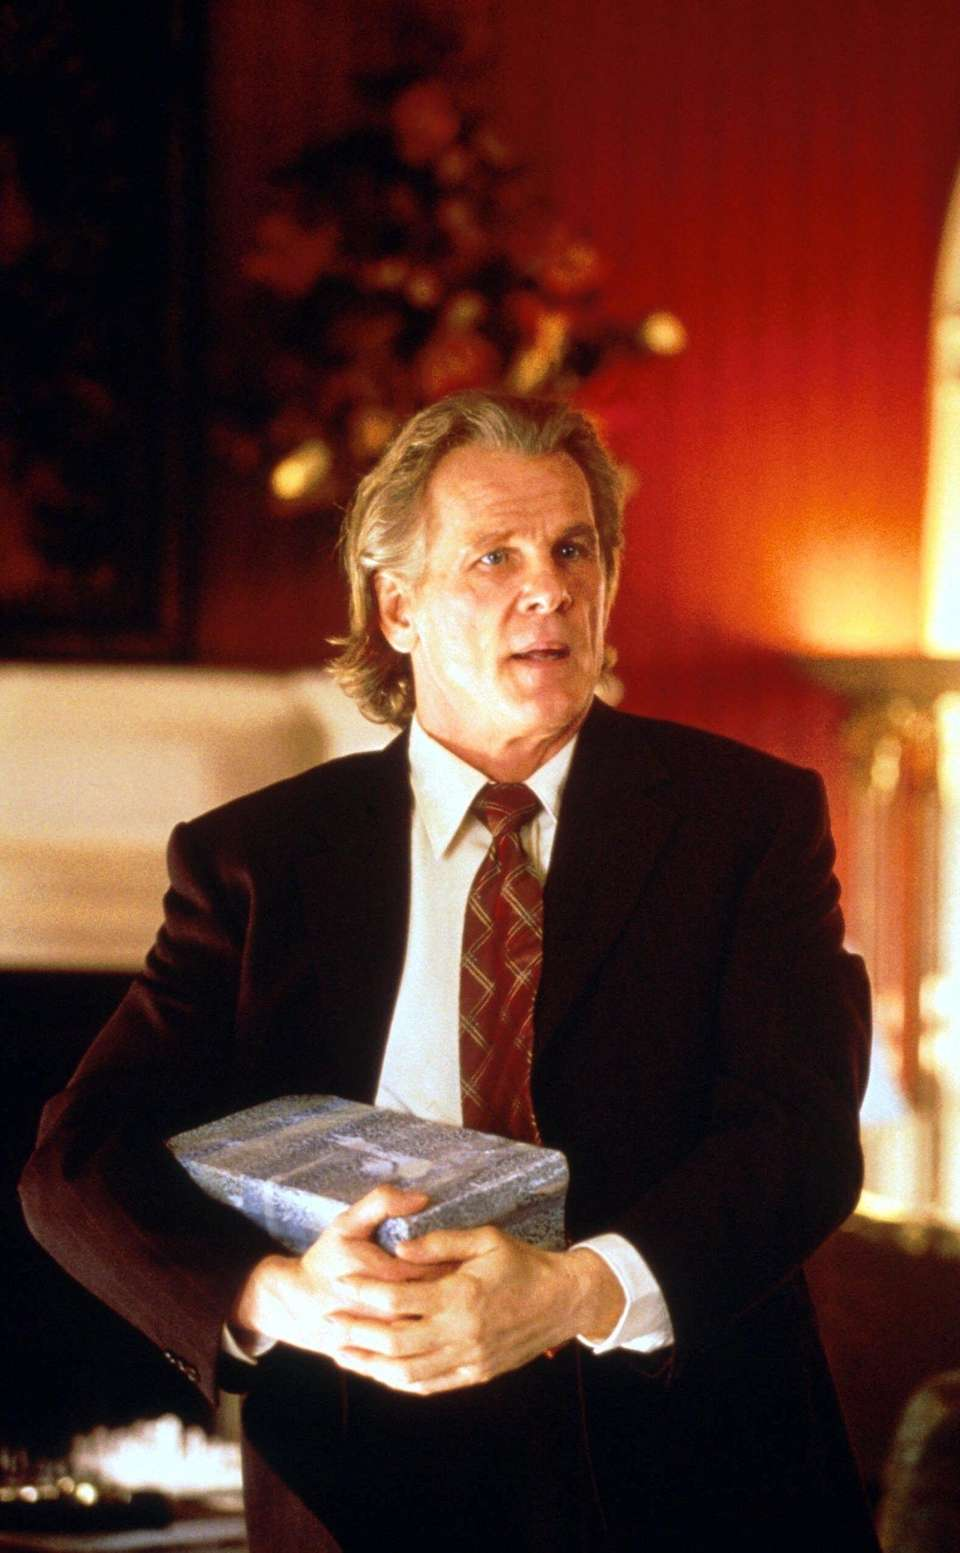 Nick Nolte was named the sexiest man of